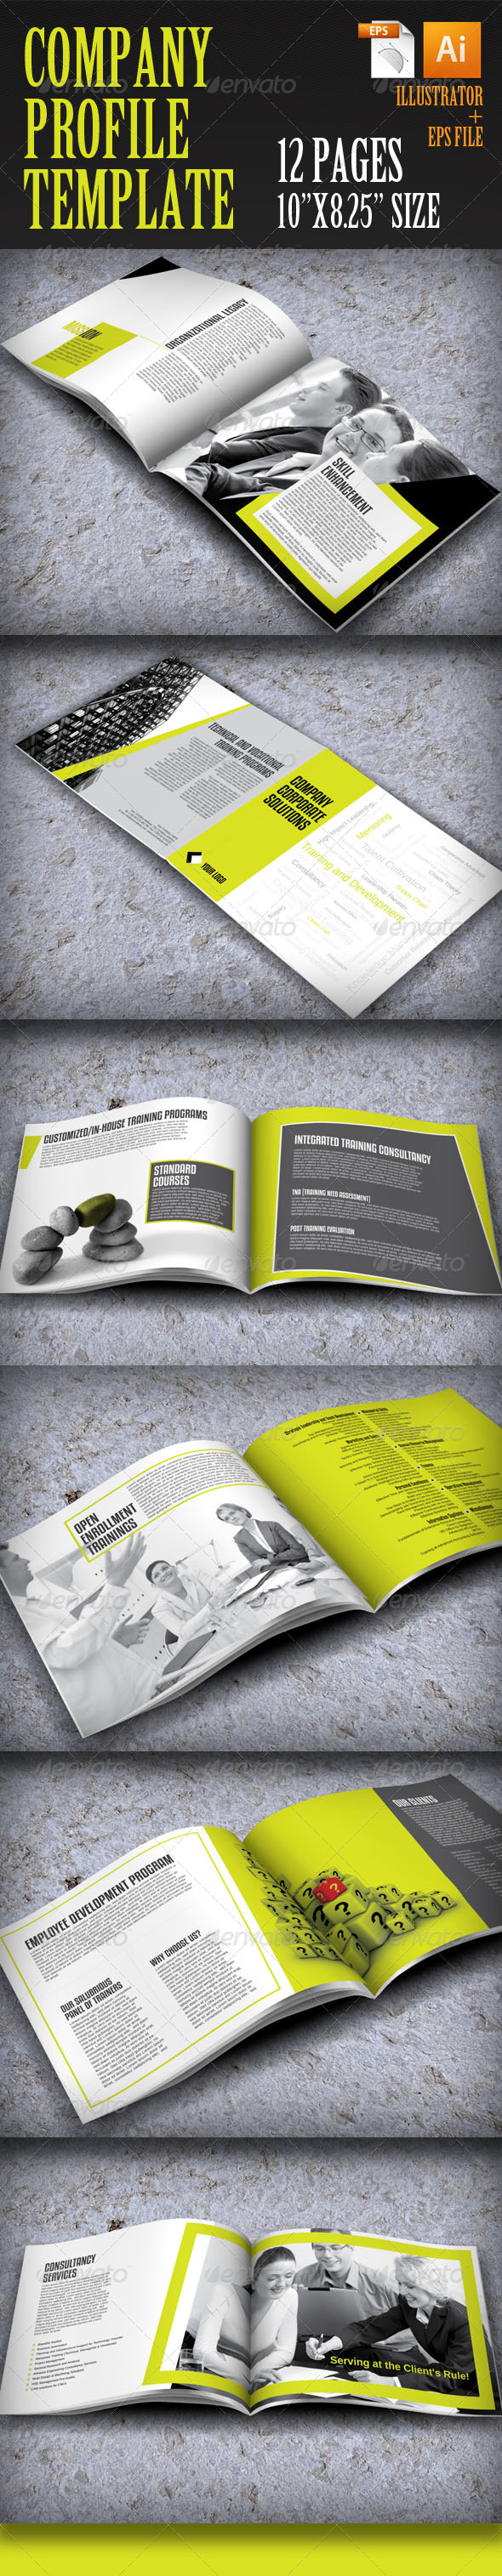 GraphicRiver Company Profile Template 4034201